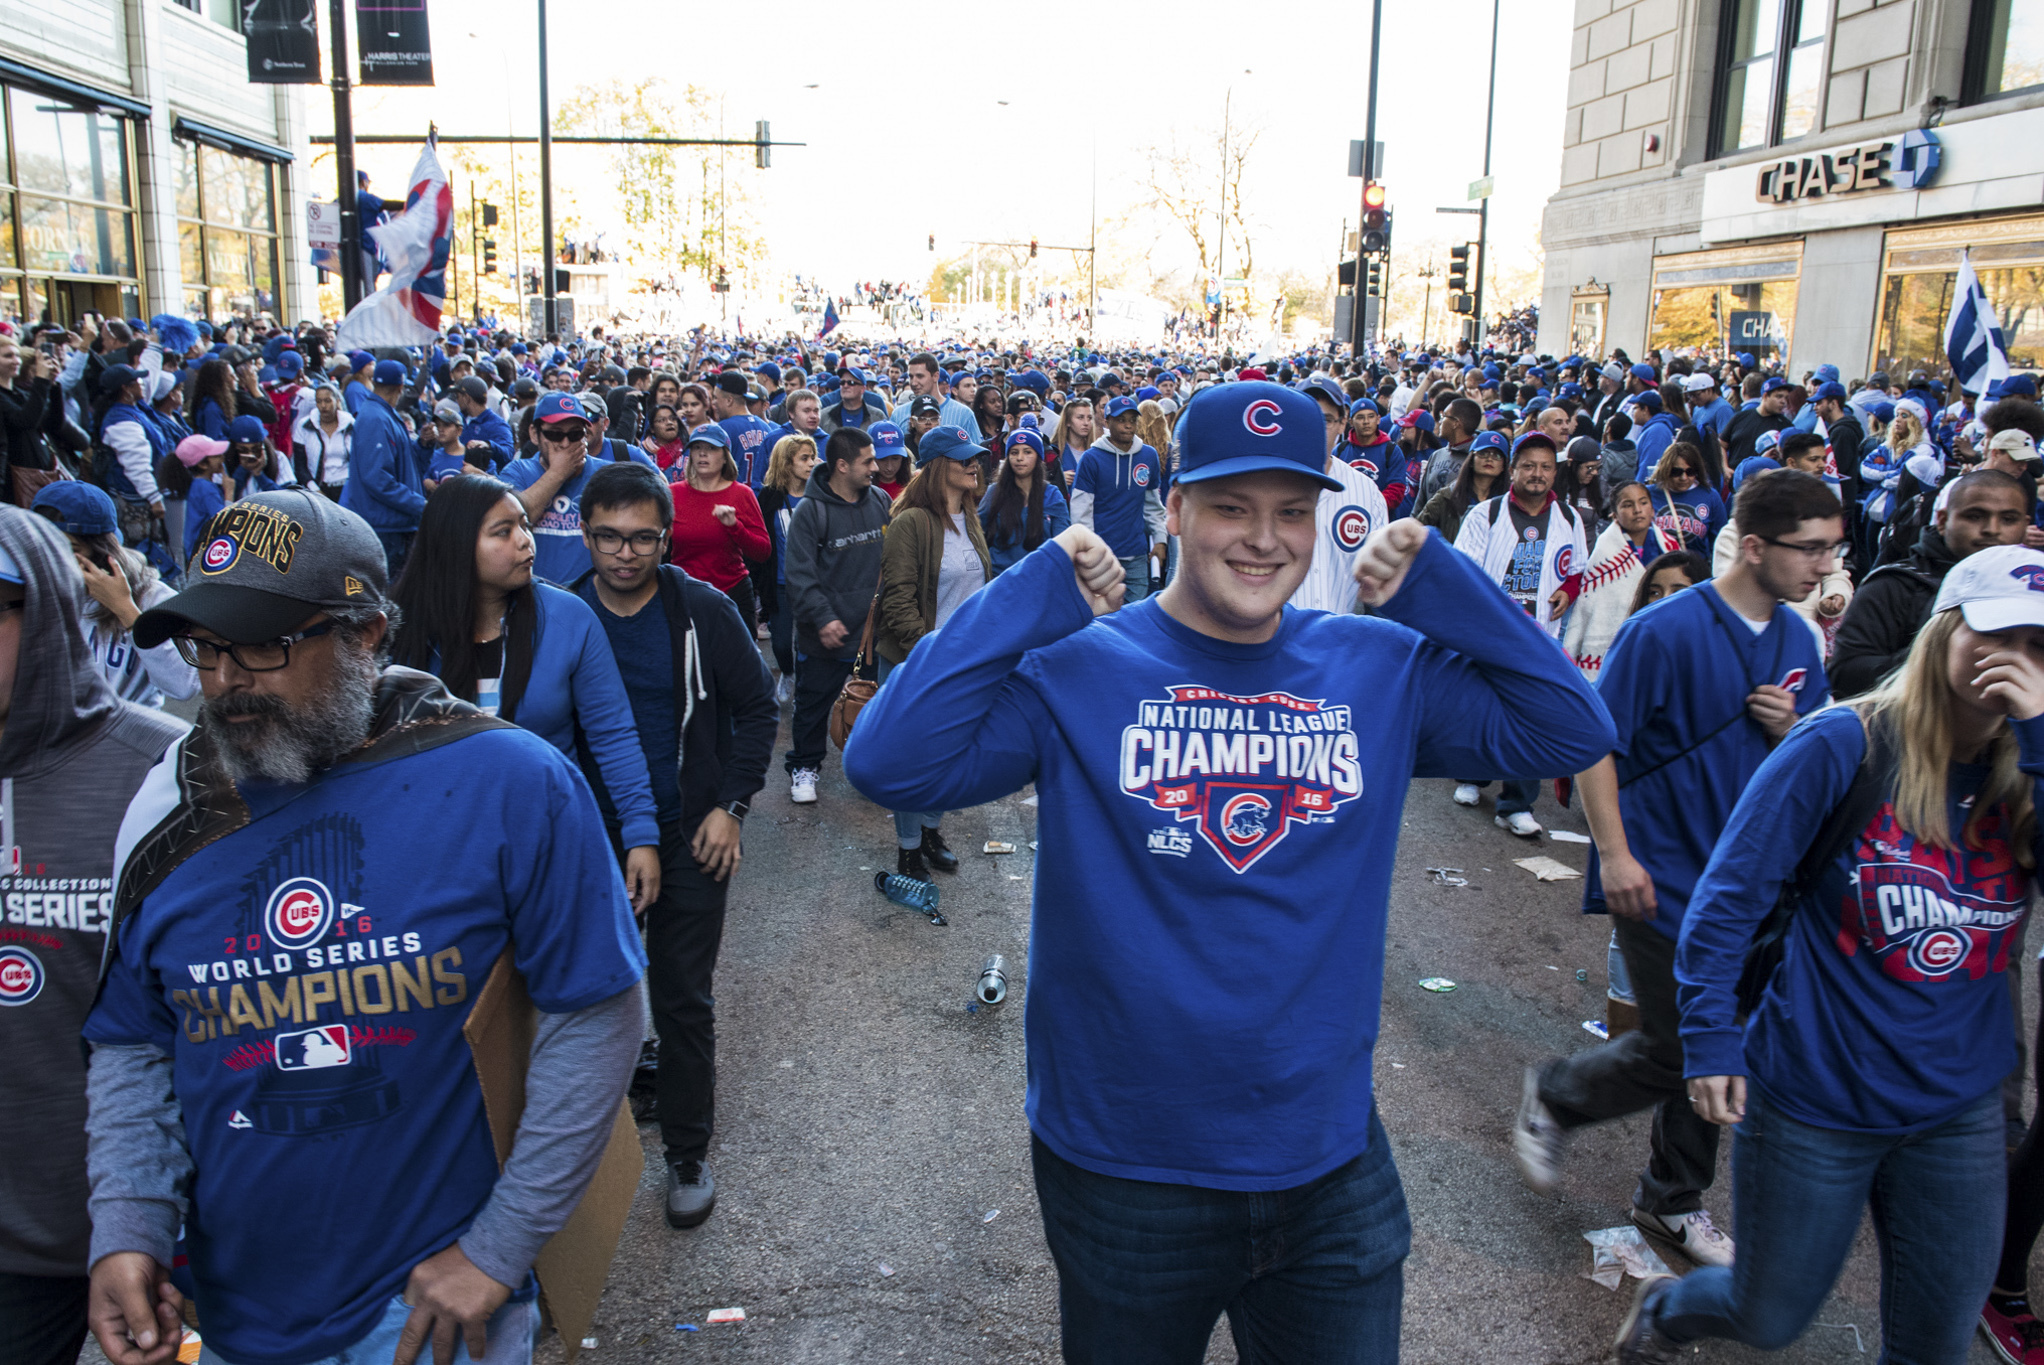 Chicago Cubs championship parade brings record attendance